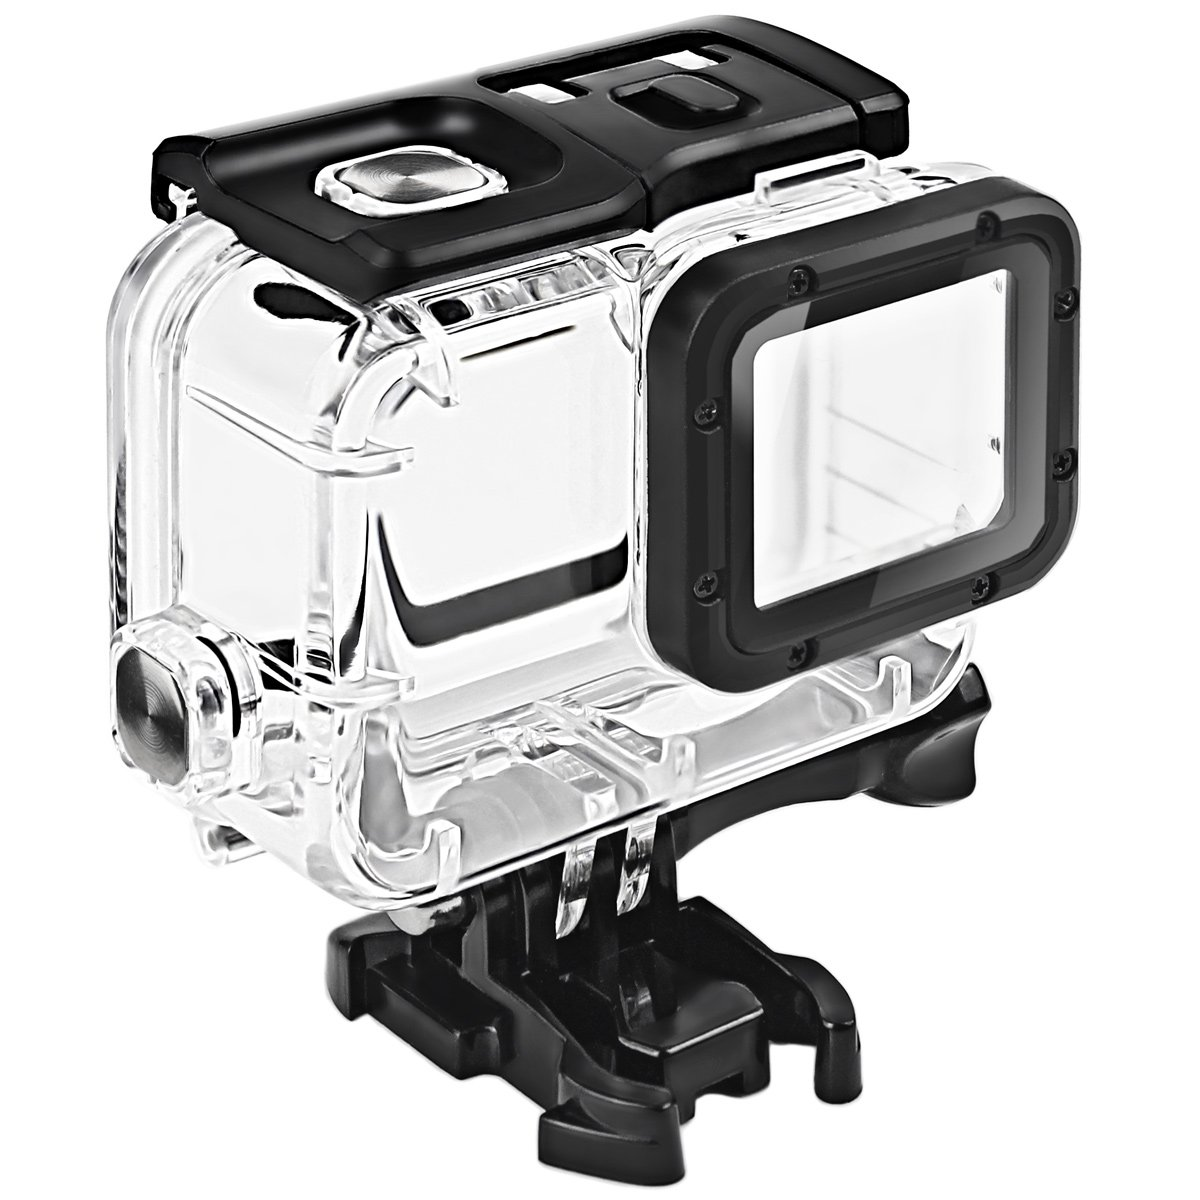 FitStill Waterproof Housing for GoPro HERO 2018/6/5 Black, Protective Underwater Dive Case Shell with Bracket Accessories for Go Pro Hero6 Hero5 Action Camera by FiTSTILL